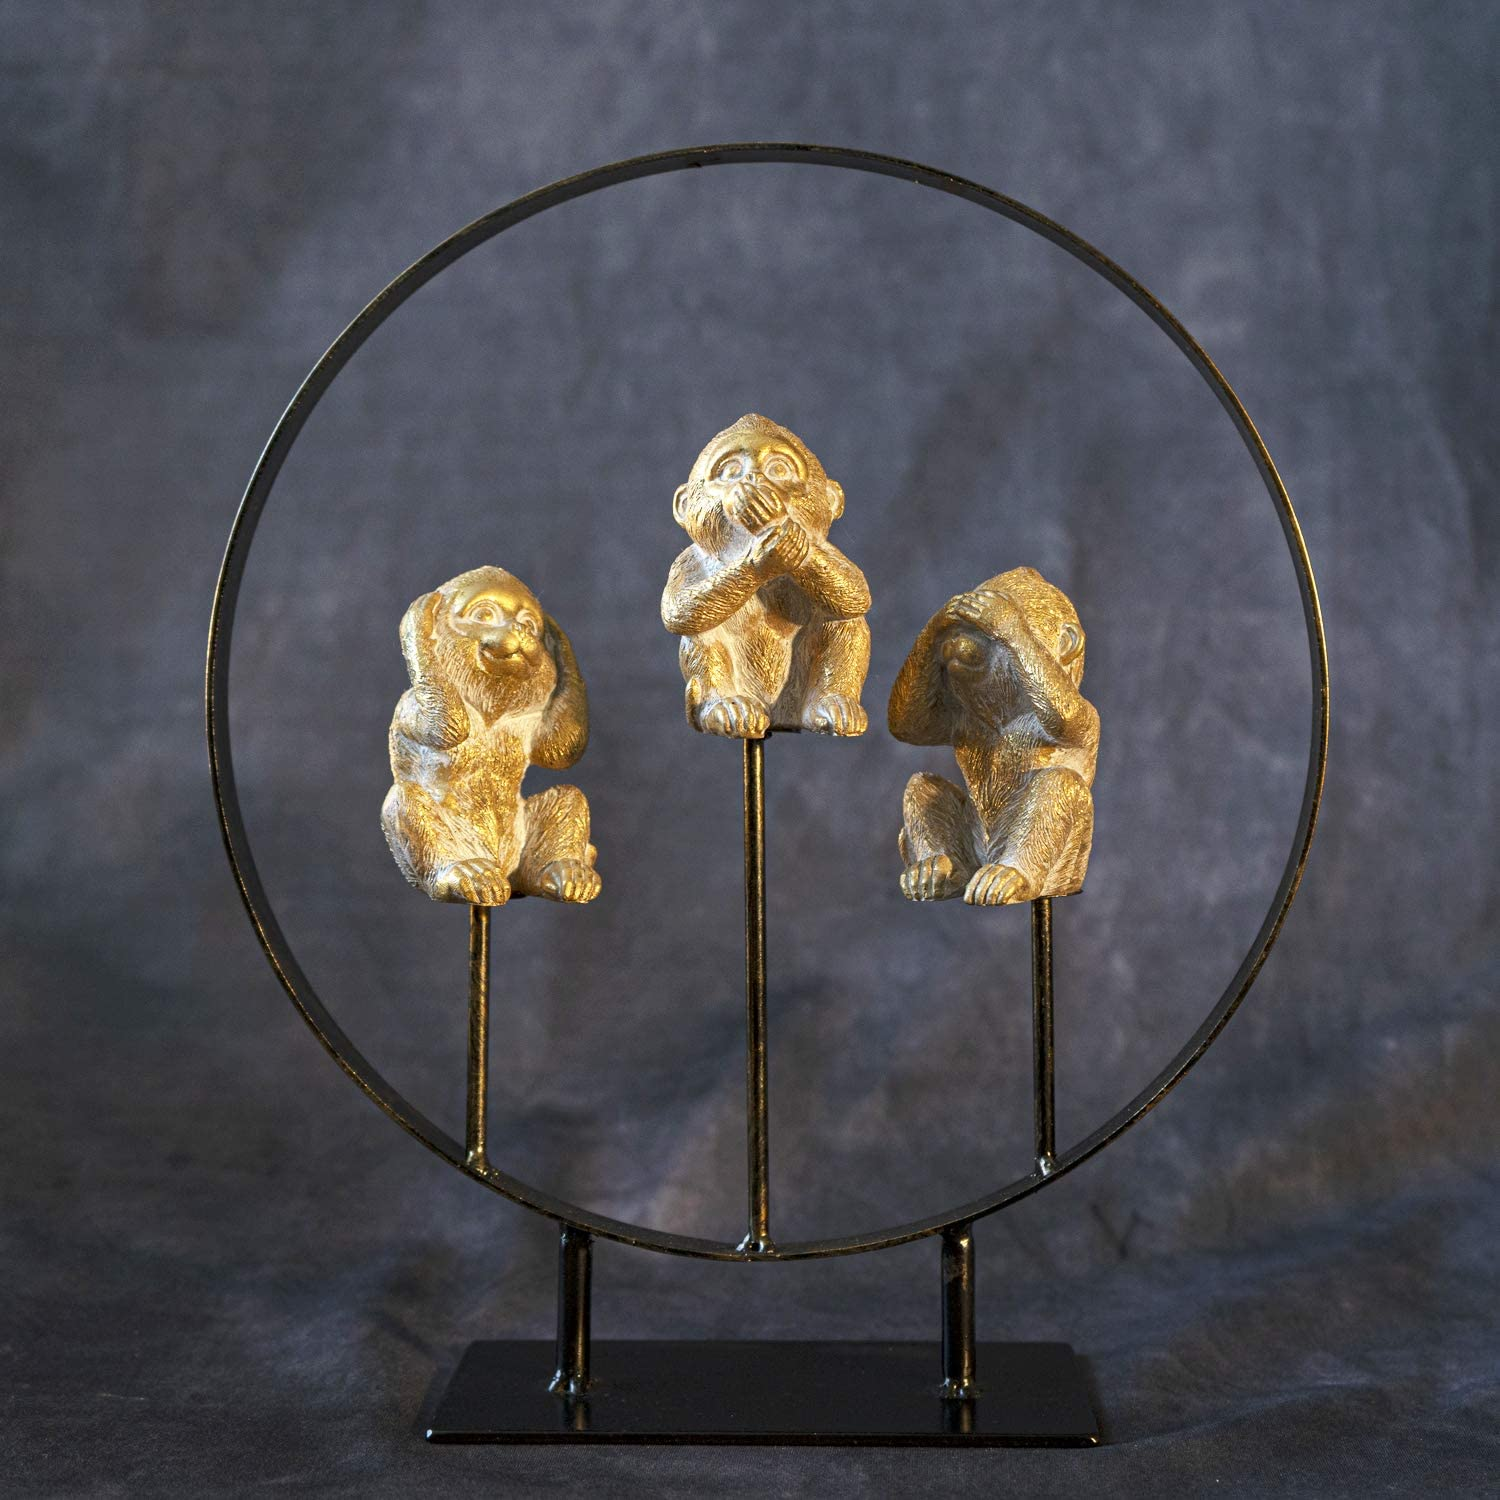 SUMMIT COLLECTION See No Evil Hear No Evil Speak No Evil Golden Monkeys On Metal Circle Stand Home and Garden Decorative Accent Gold Finish 10.75 Inches L and 11.5 Inches Tall